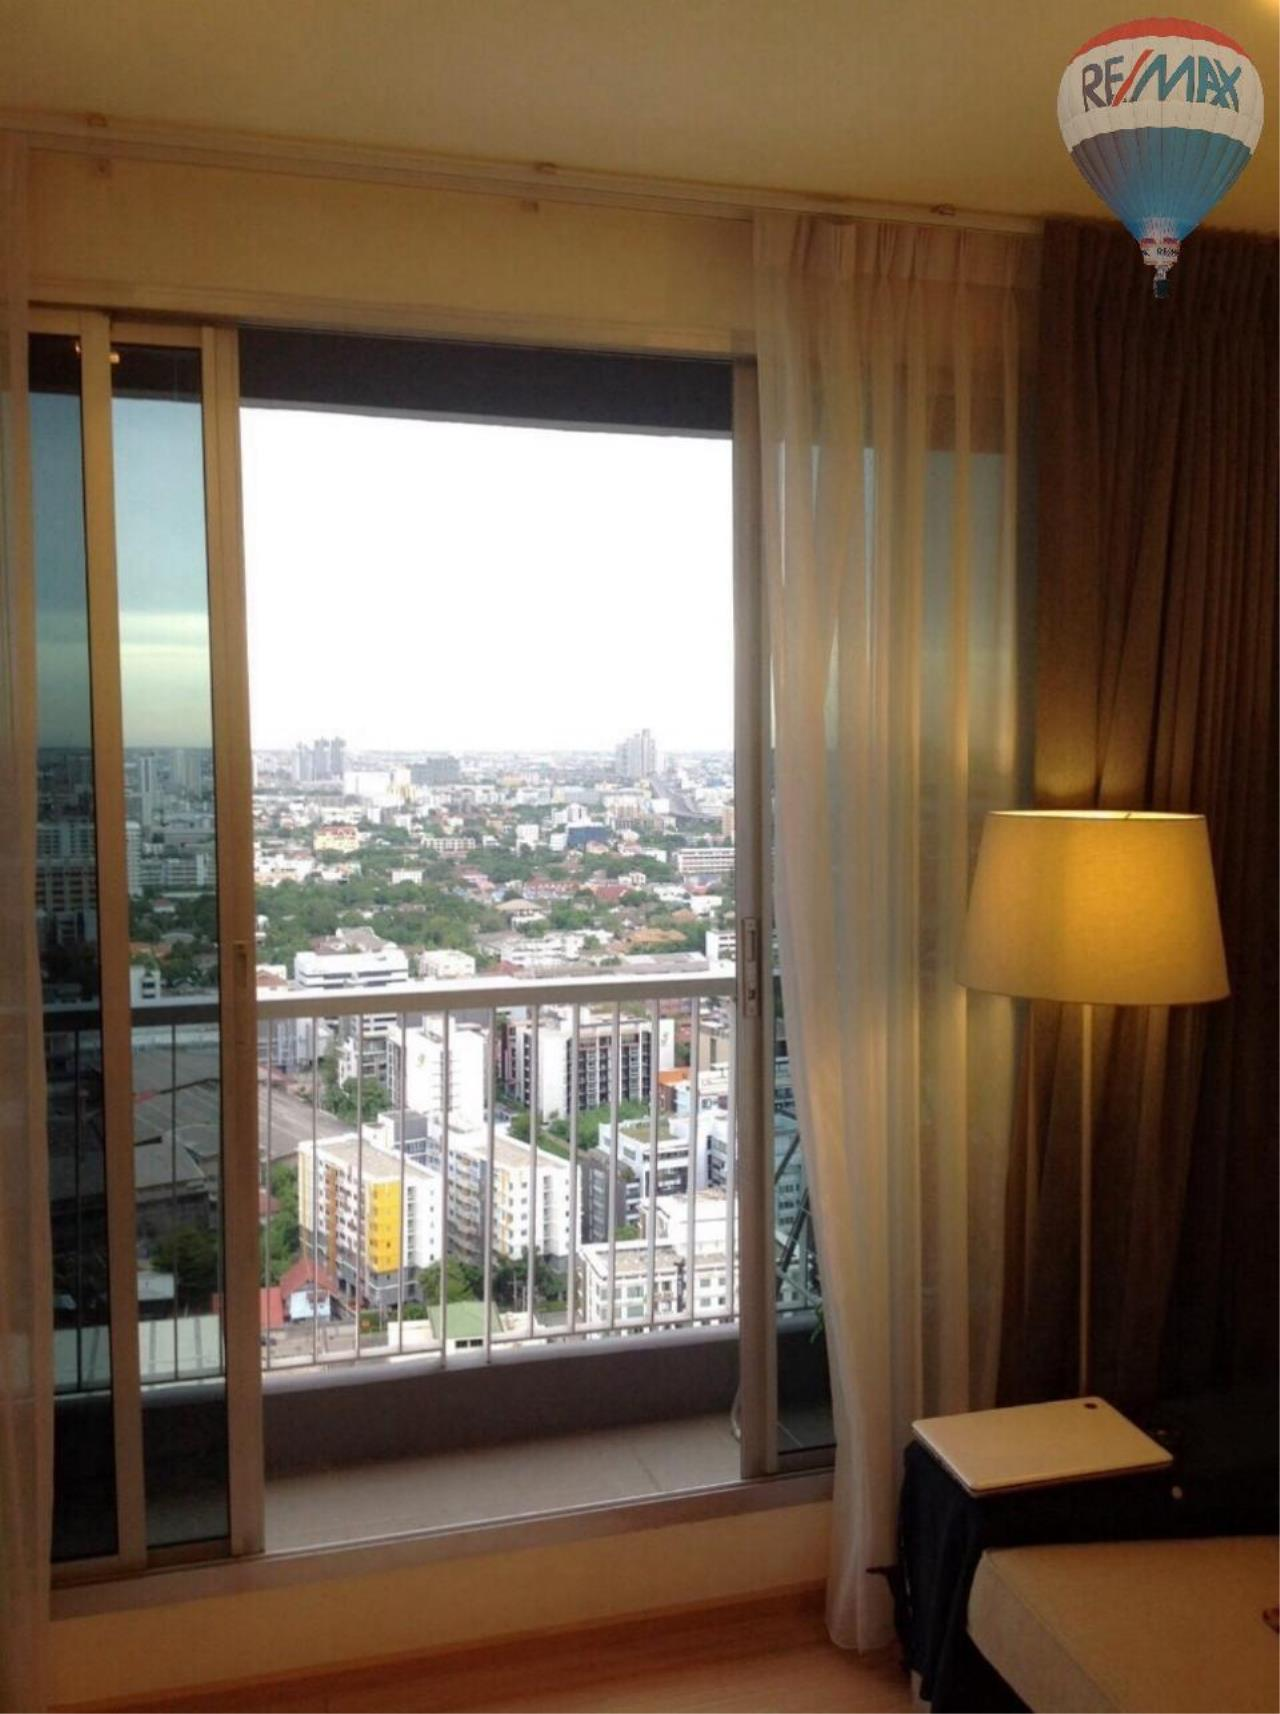 RE/MAX Properties Agency's 1 bedroom 45 Sq.M. for renting 32,000 THB in Rhythm Sukhumvit 3